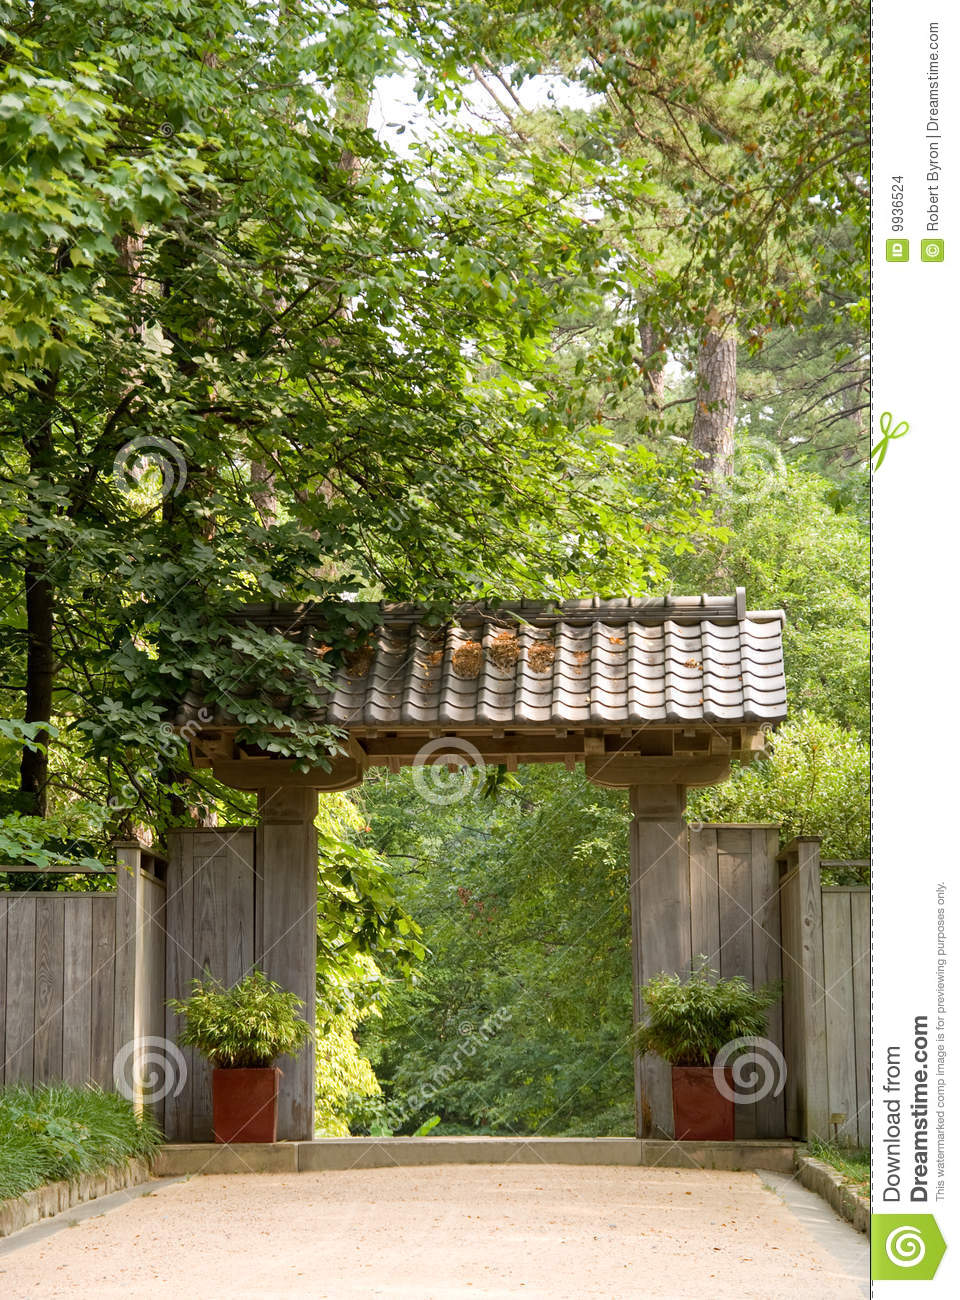 japanese-pagoda-garden-gate-9936524 Pagoda Garden Design Plans on japanese pagoda plans, garden pagoda lanterns, garden statuary, pagoda design plans, pagoda house plans, square foot gardening plans, form cement chinese pagoda plans, wood pagoda plans, outdoor fireplace plans, pagoda construction plans, pagoda structure plans,